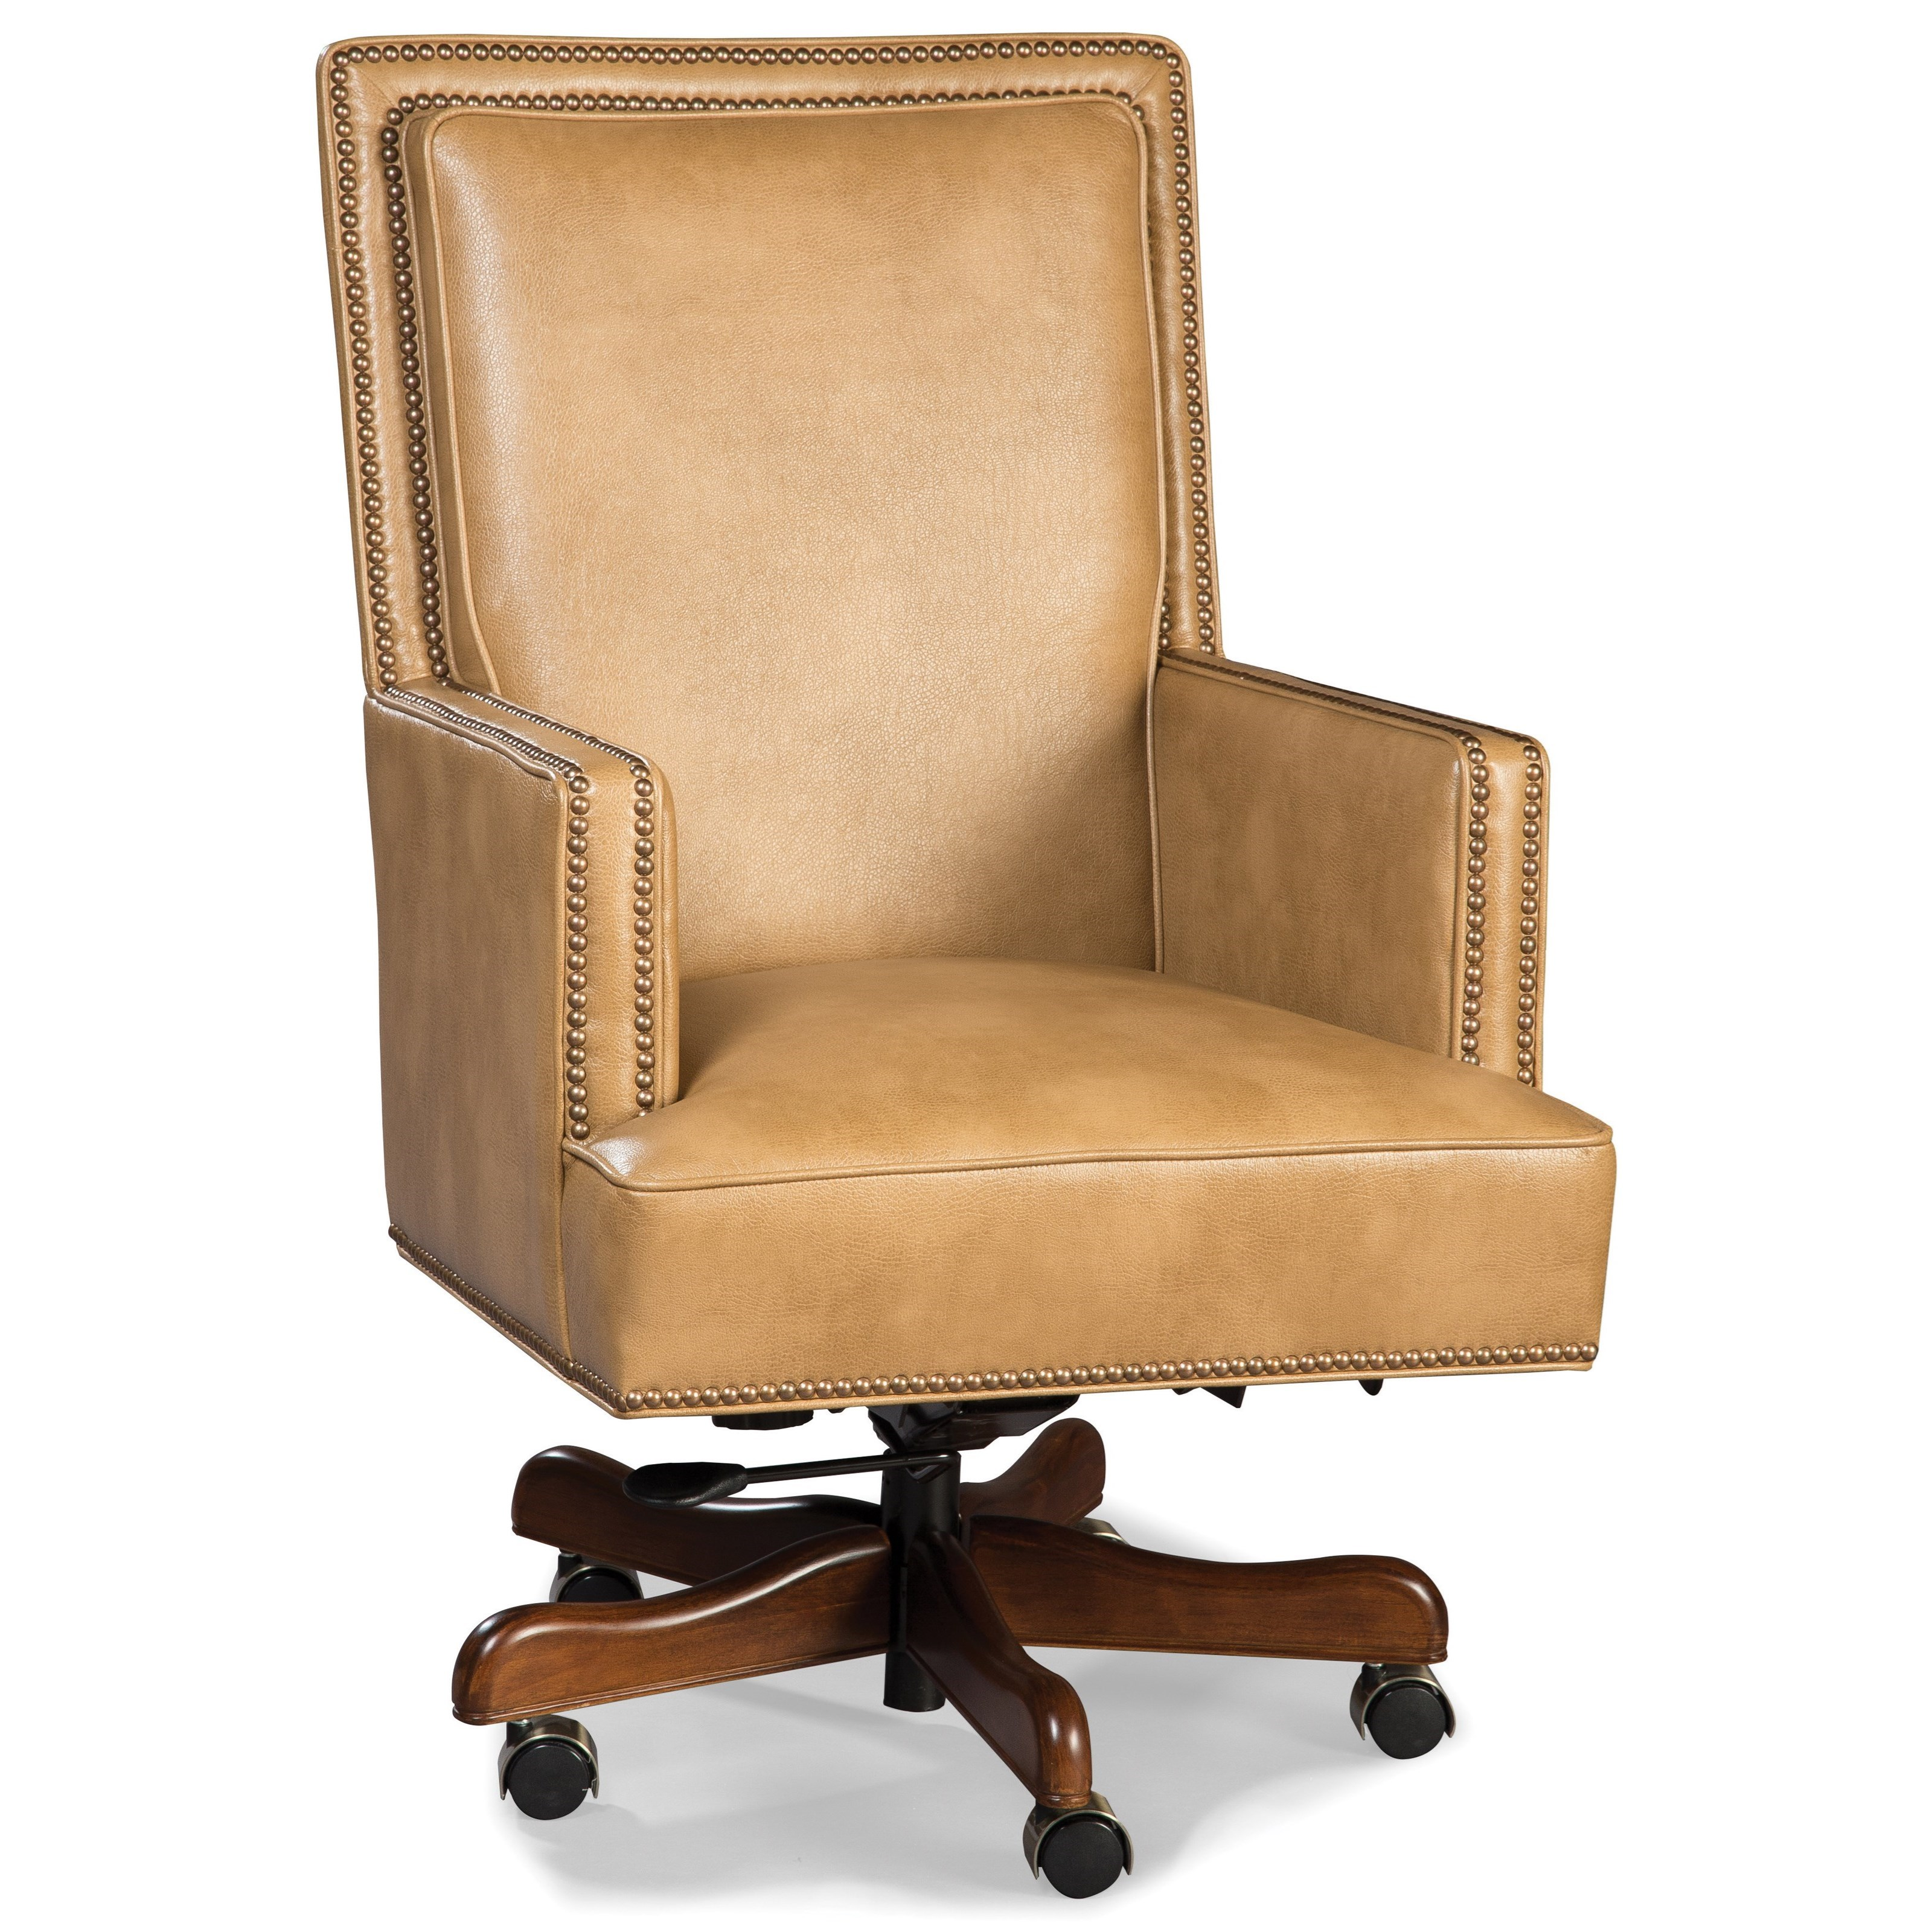 Fairfield Chairs Fairfield Chairs Traditional Rolling Executive Chair With Nailhead